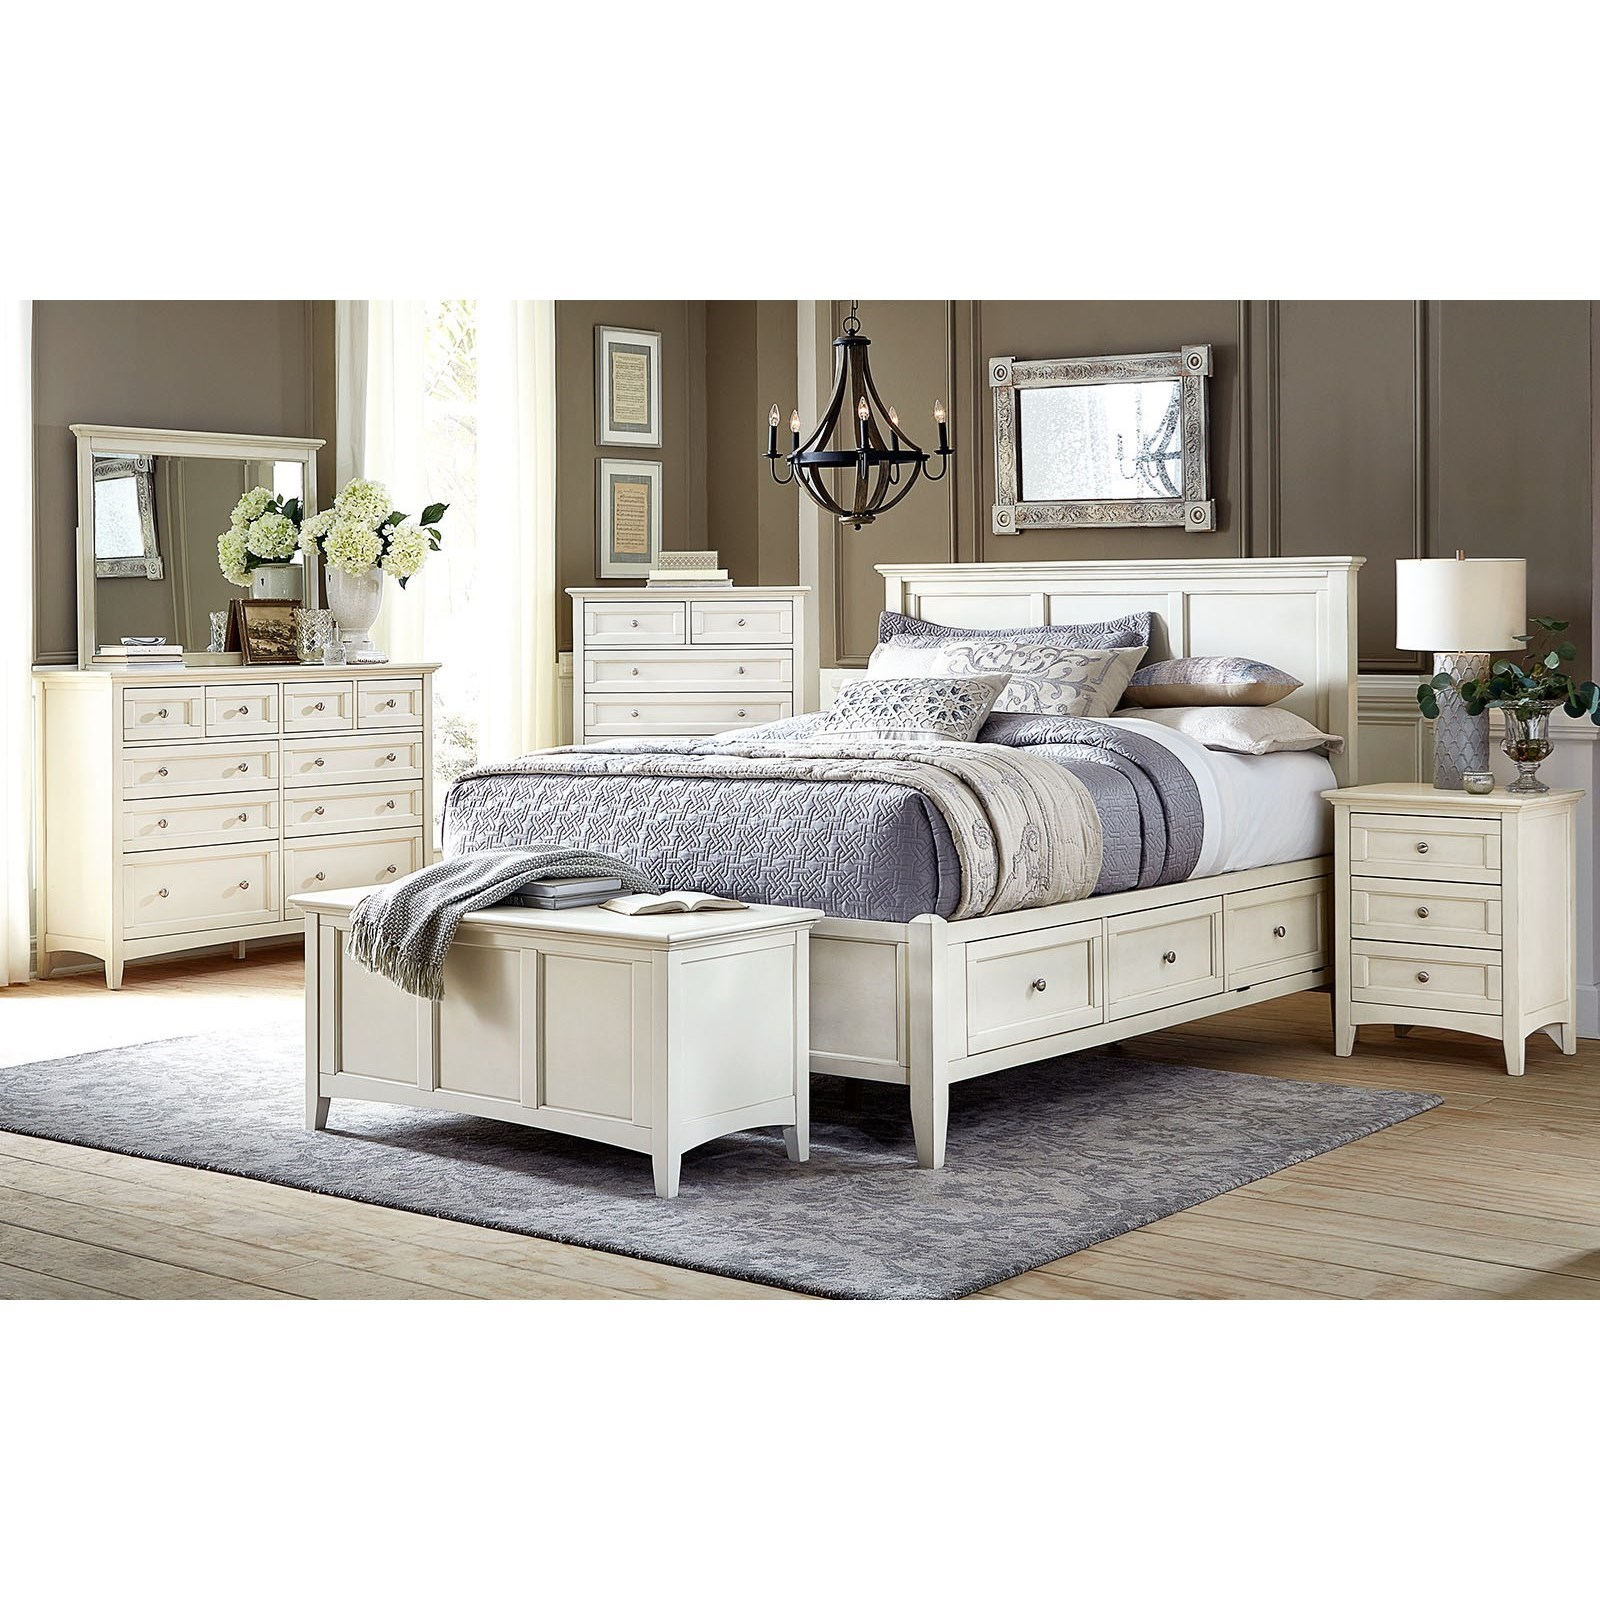 Northlake California King Bedroom Group by AAmerica at Zak's Home